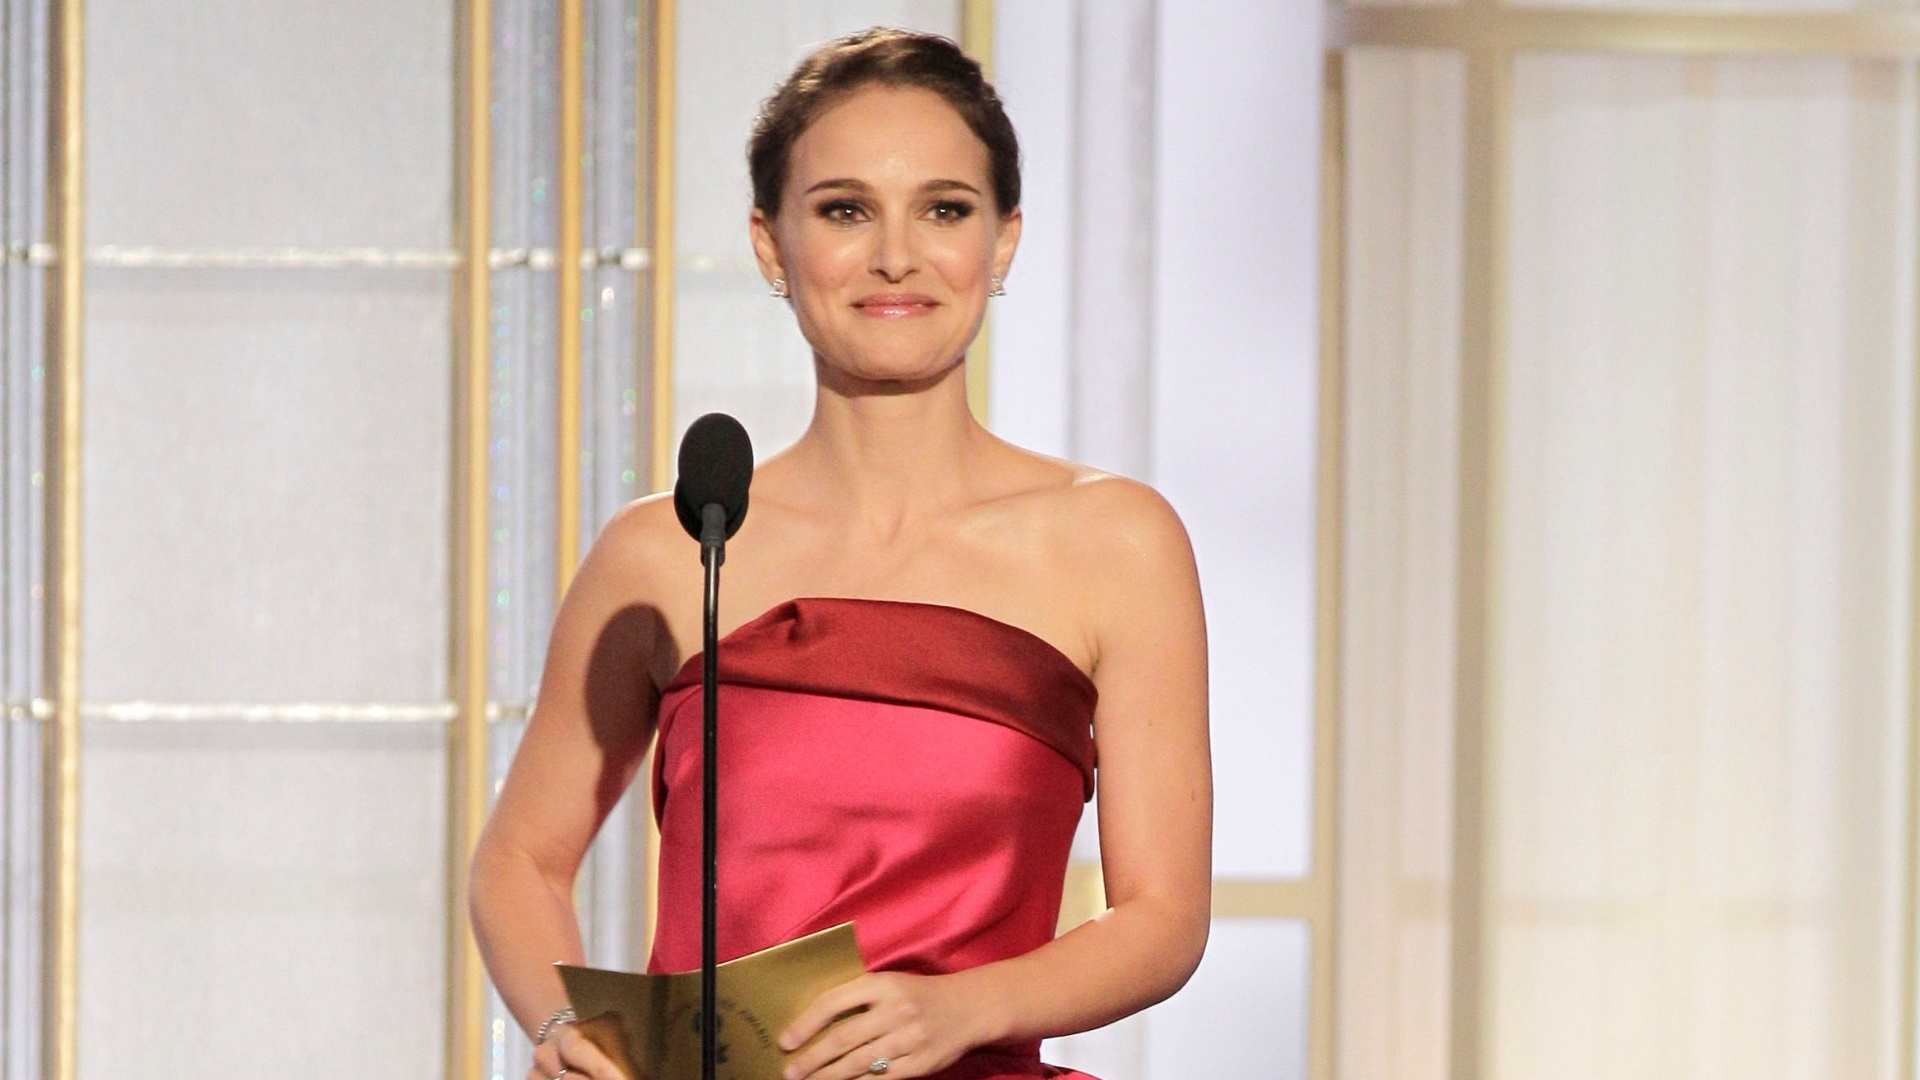 Natalie Portman apresentou o prmio de melhor ator de drama em cinema e tambm virou alvo de Ricky Gervais: 